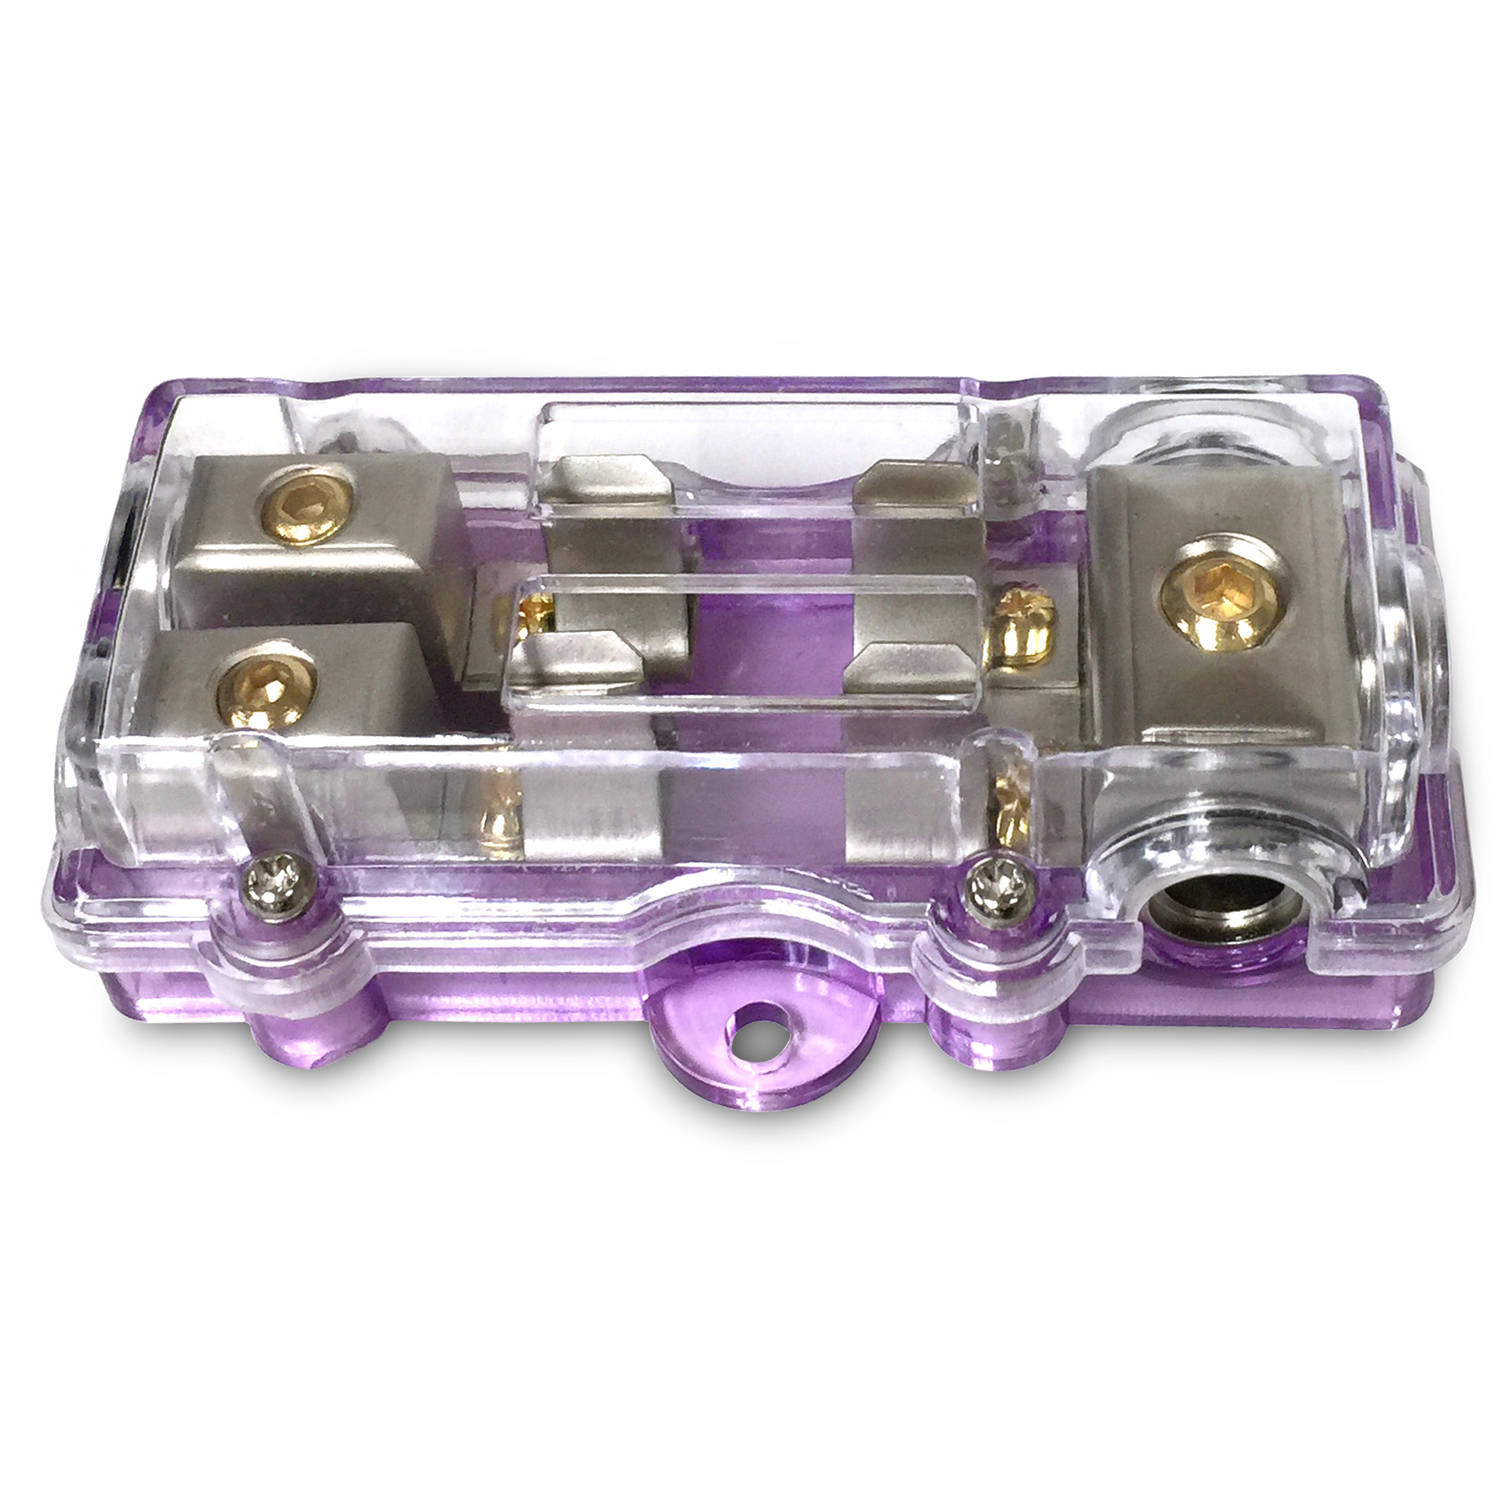 AGU Fuse Distribution Block 4 way in / to 2 ea 8 way out